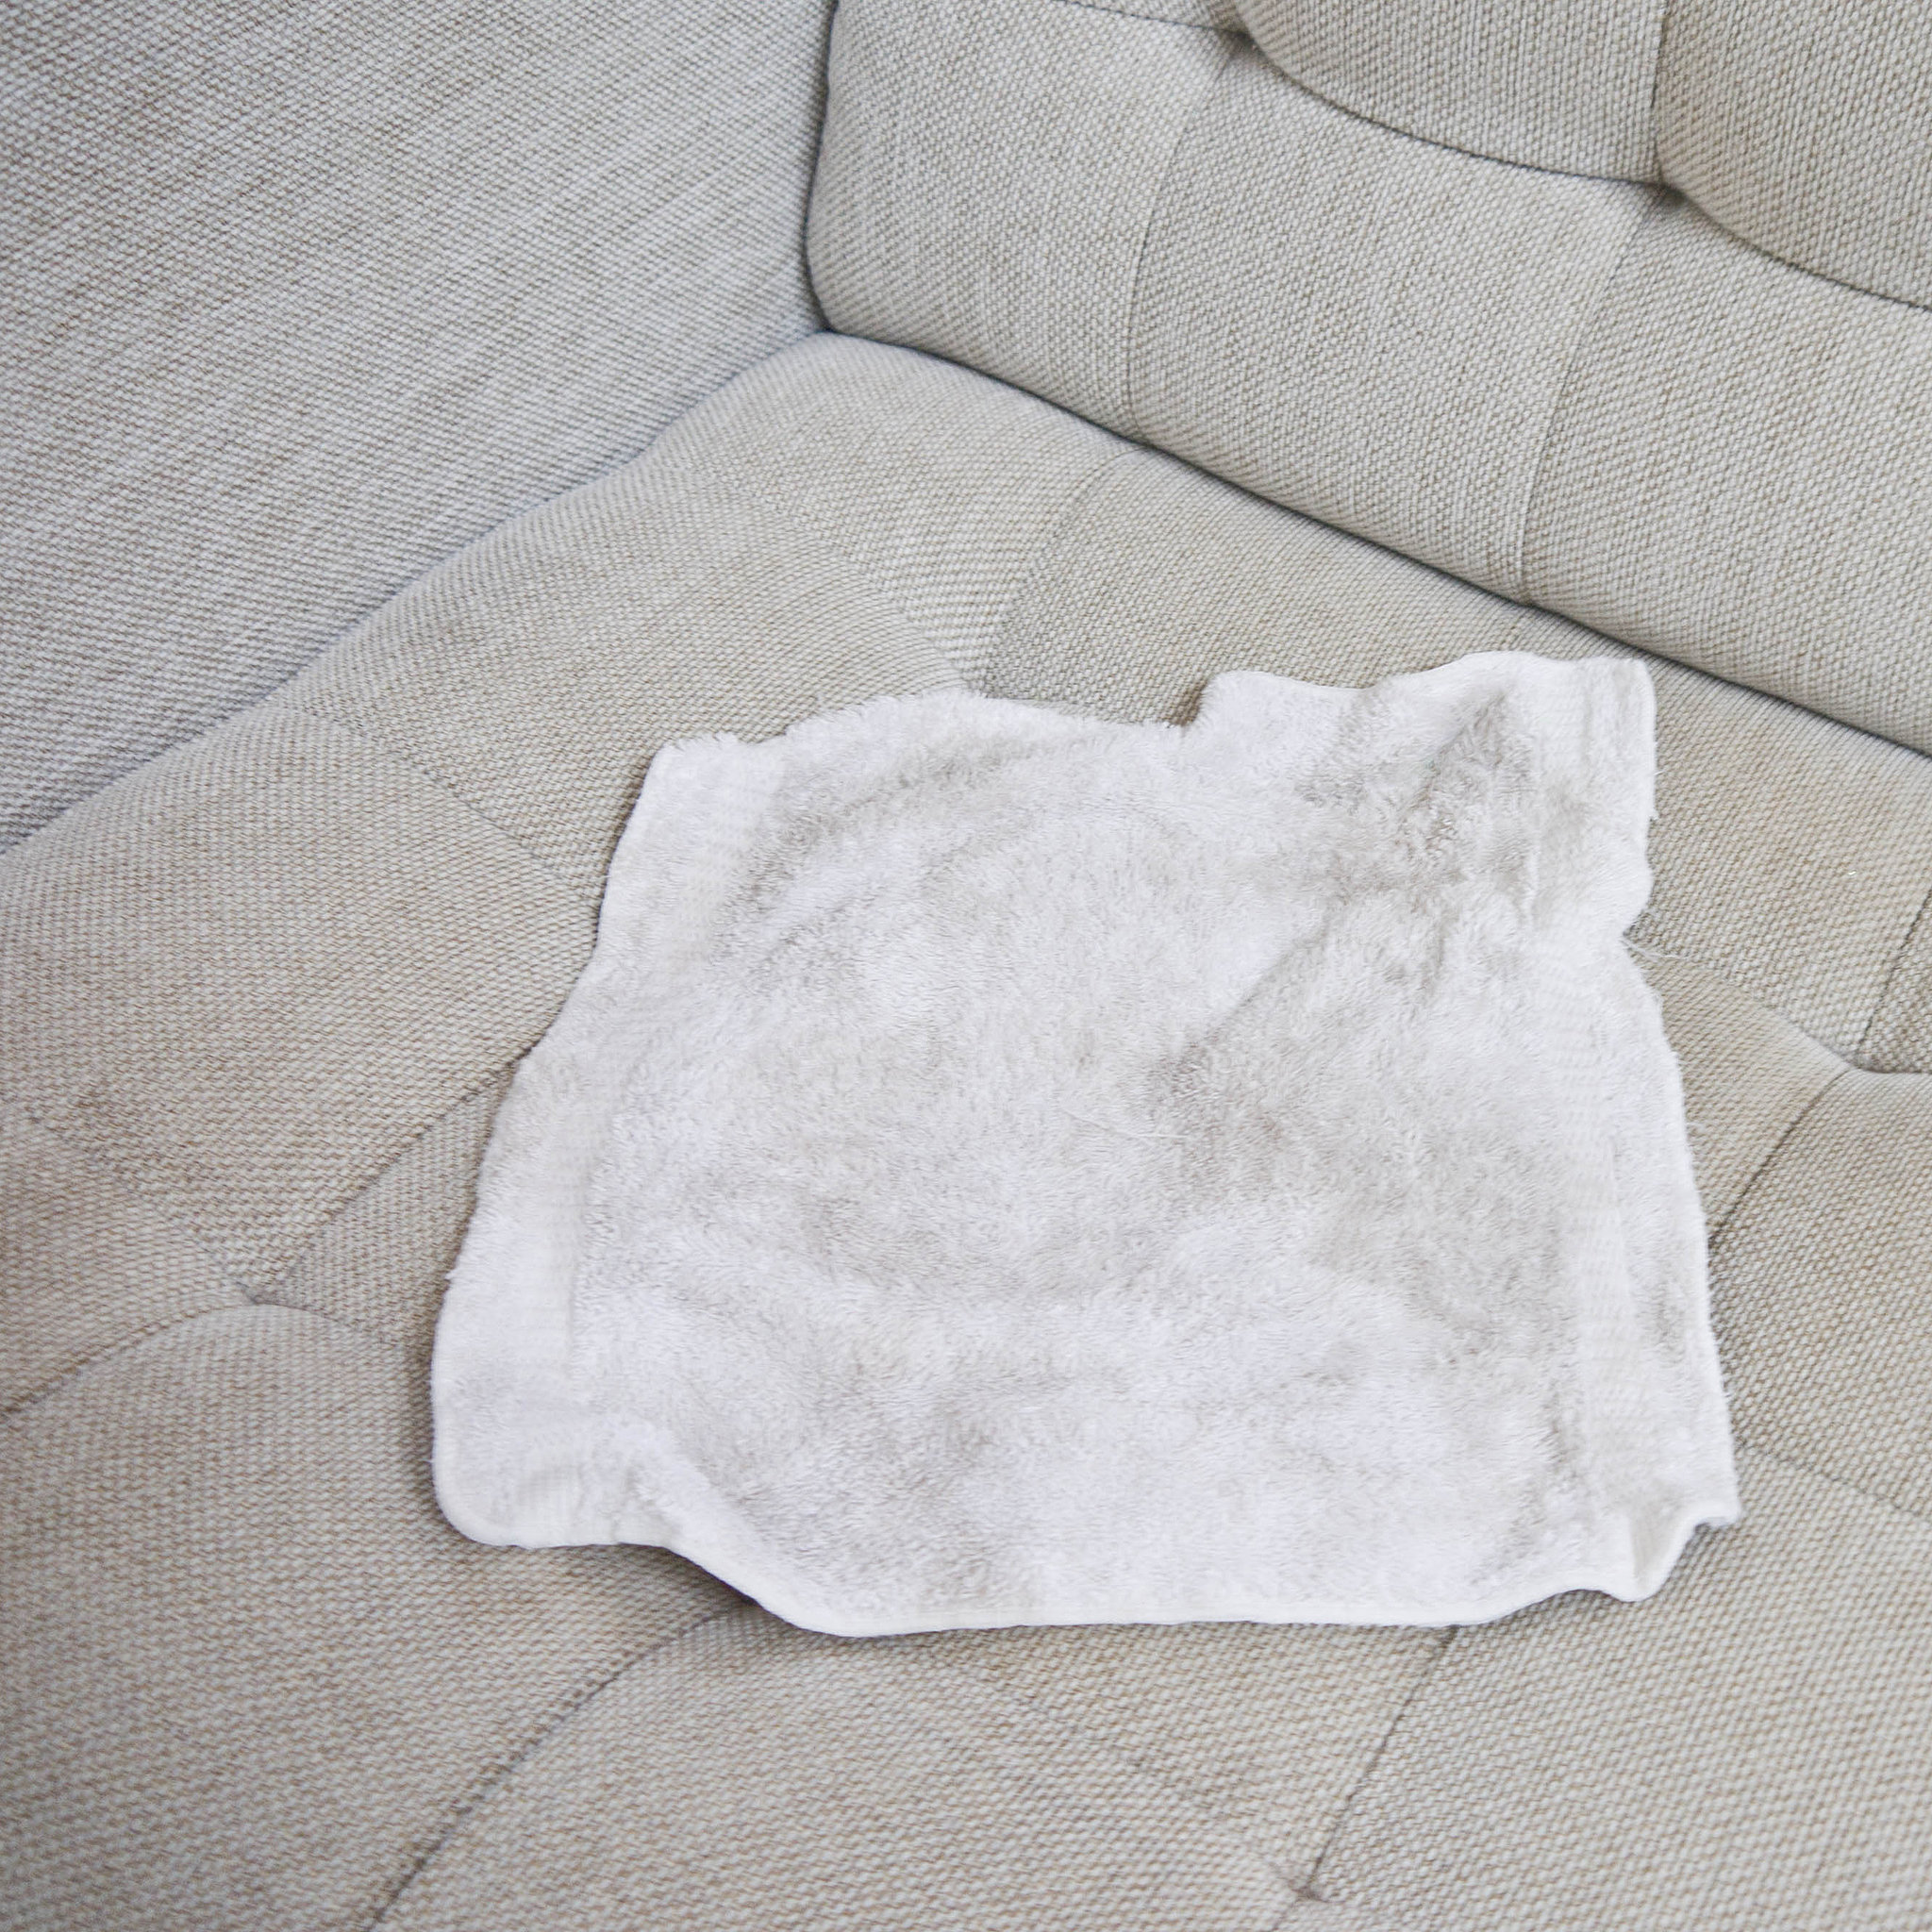 how to clean stains off your sofa corner sectional couch upholsery hirerush blog